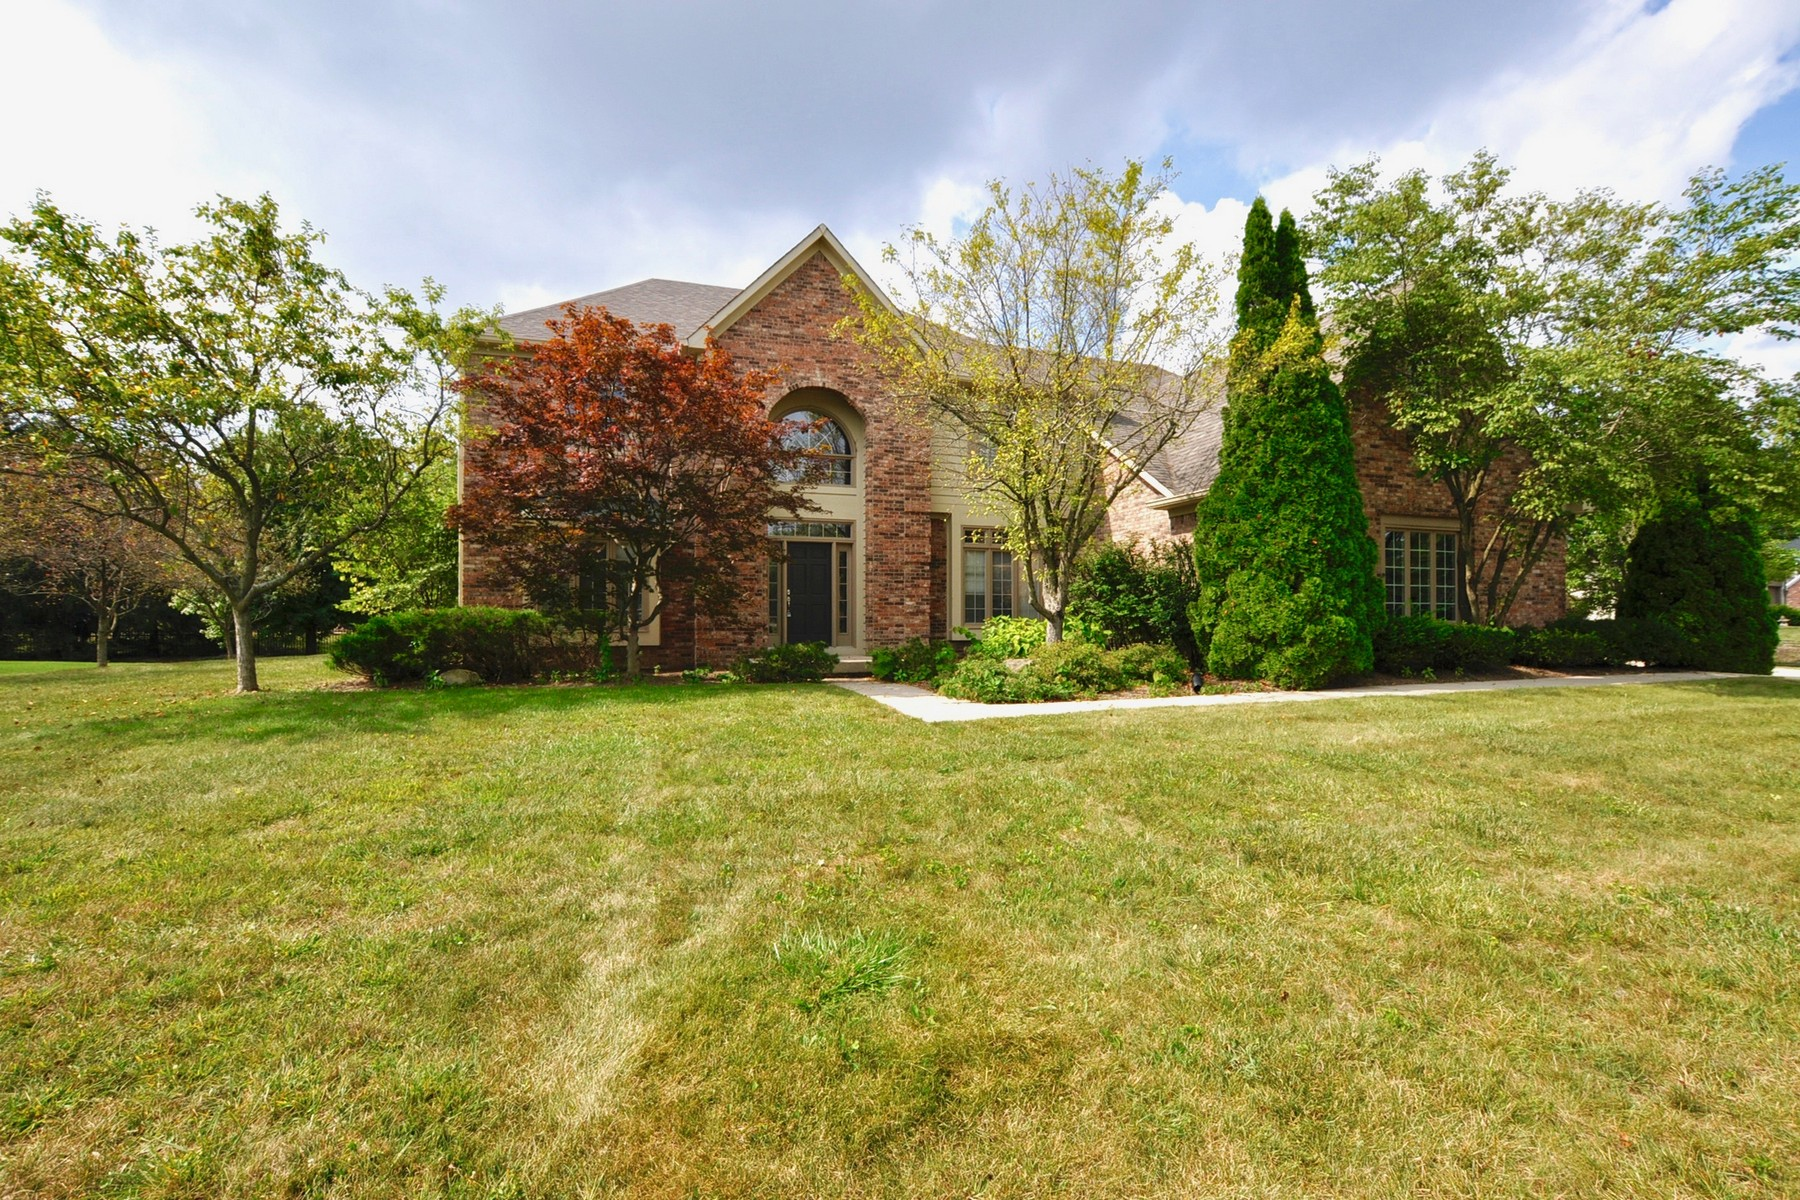 Single Family Home for Sale at Classic Carmel home in Popular Ashton Neighborhood 5541 White Hall Way Carmel, Indiana 46033 United States